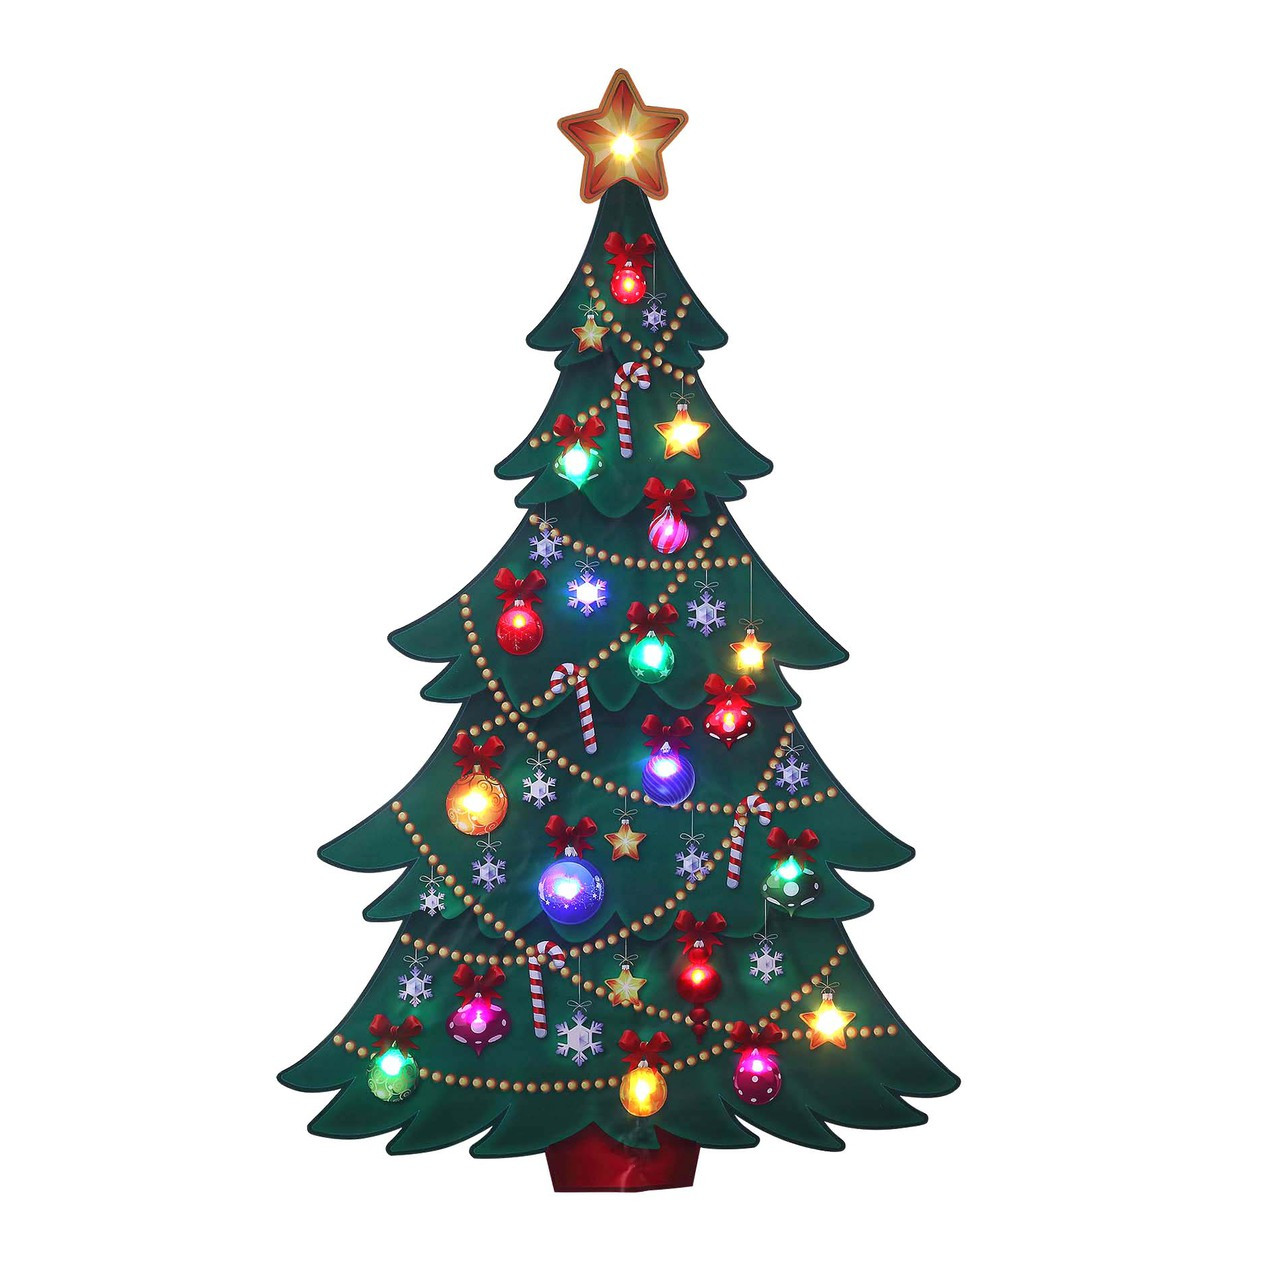 Outdoor Light Up Christmas Tree.Mr Christmas Christmas Tree Illuminart Outdoor Dzcor 10533